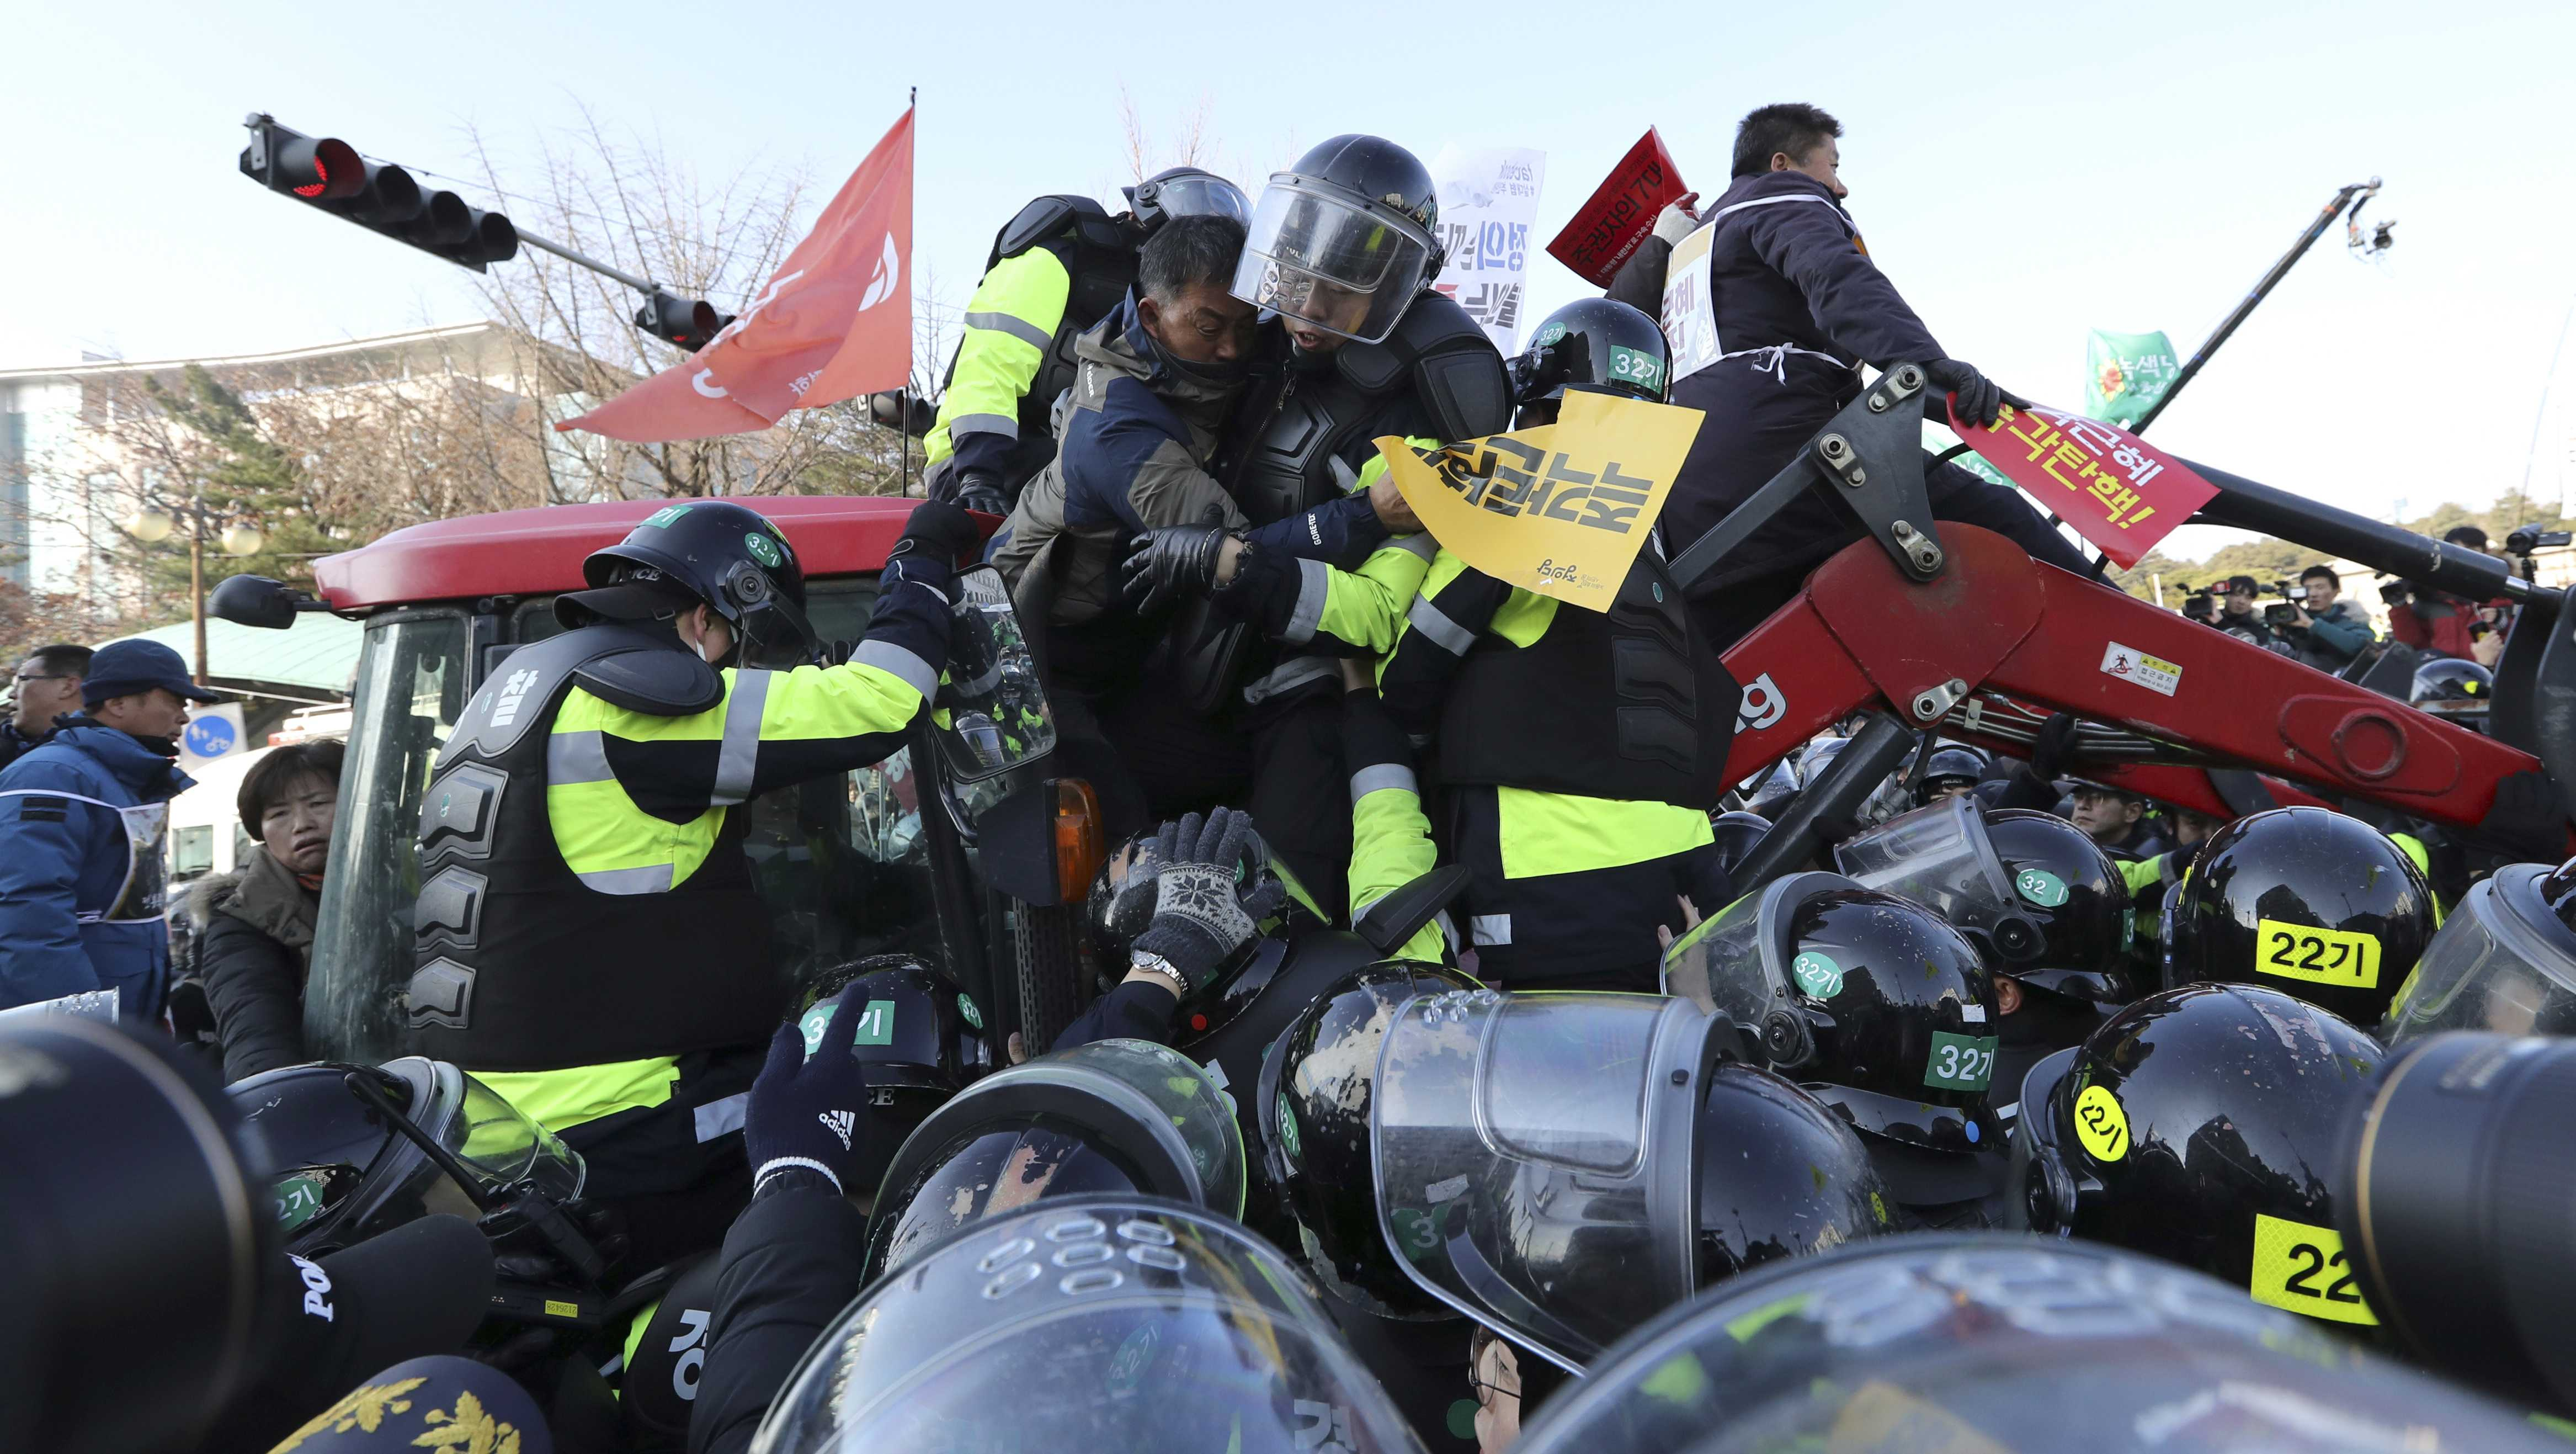 "Police officers try to drag down a protesting farmer from a tractor as they are blocked by police officers before a rally demanding the impeachment of South Korean President Park Geun-hye in front of the National Assembly in Seoul, South Korea, Friday, Dec. 9, 2016. Park entered what could be her last day in power Friday, as lawmakers geared up for what's widely expected to be a successful impeachment vote amid a corruption scandal that has left her isolated and loathed. The banner held by a farmer reads: ""Park Geun-hye, impeachment."""